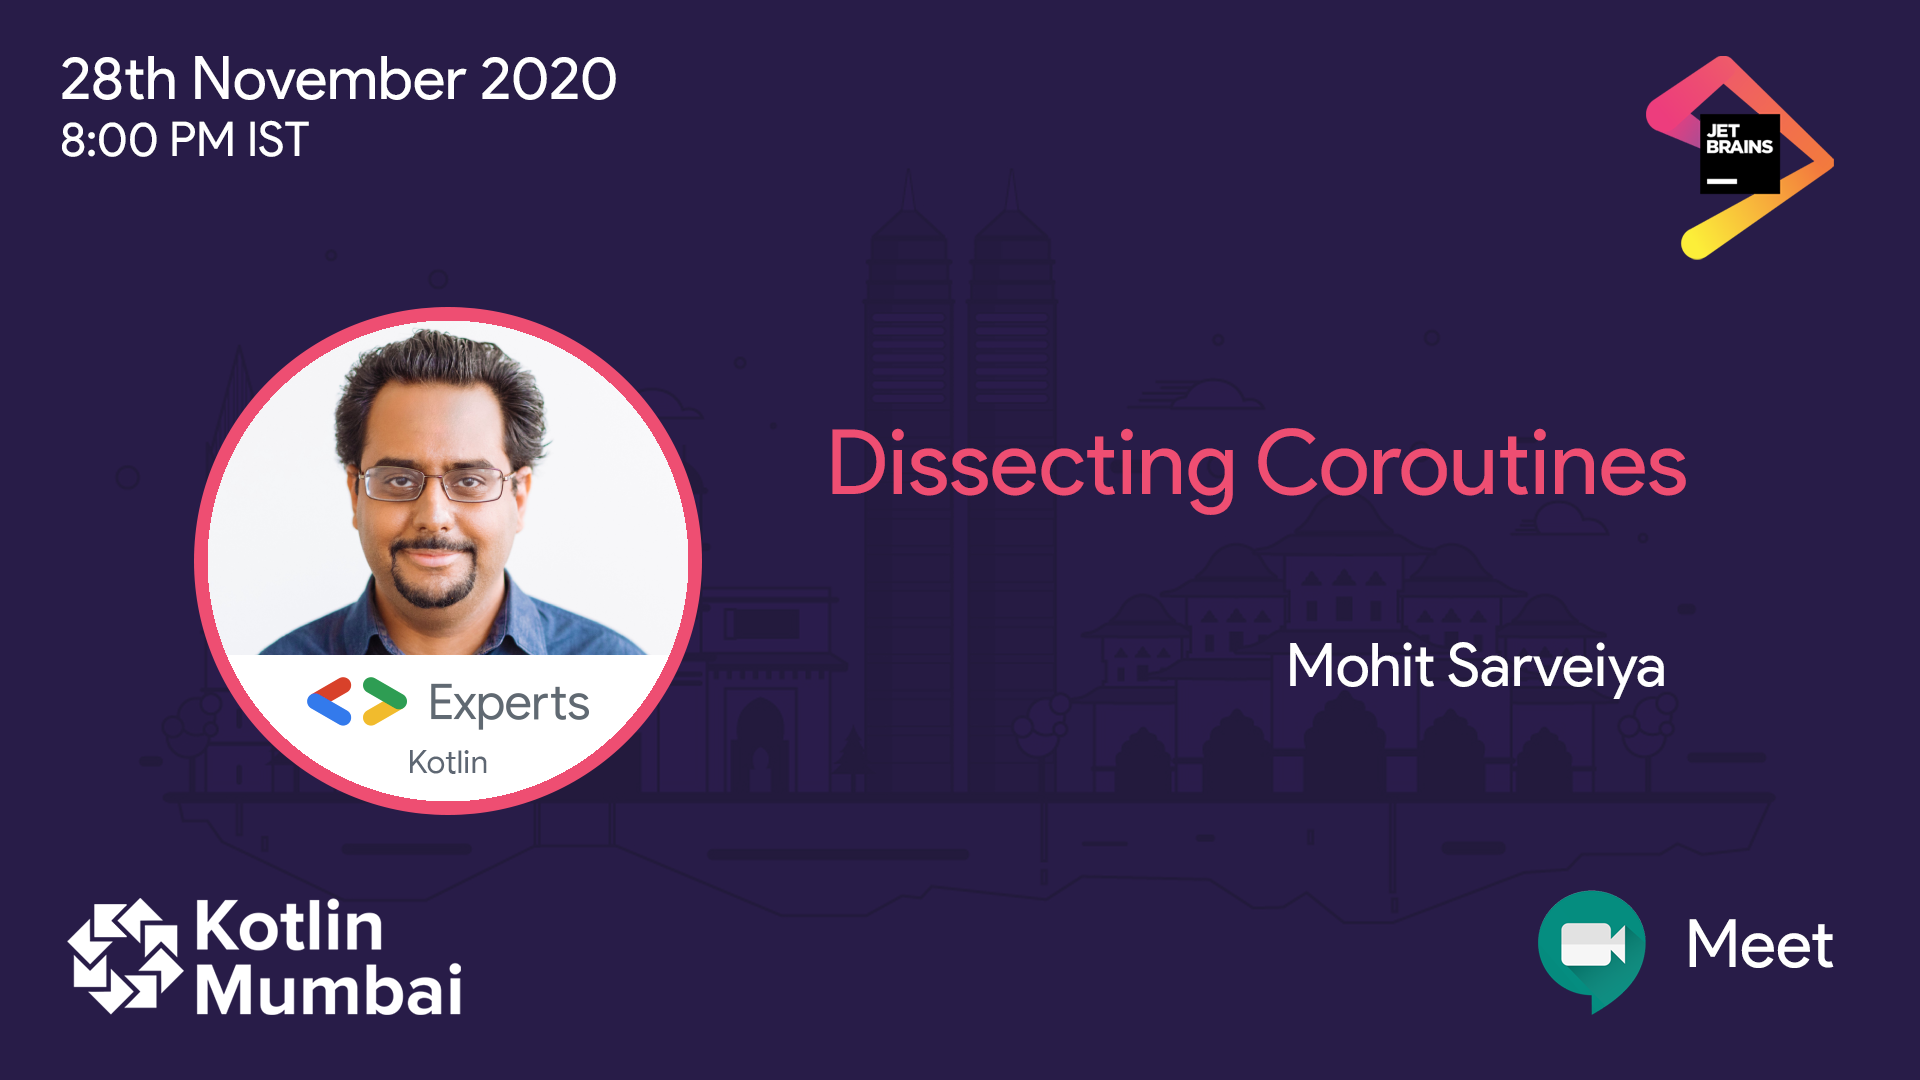 Mohit Sarveiya, GDE for Kotlin talks about selectors, channels and flows and dissects coroutines